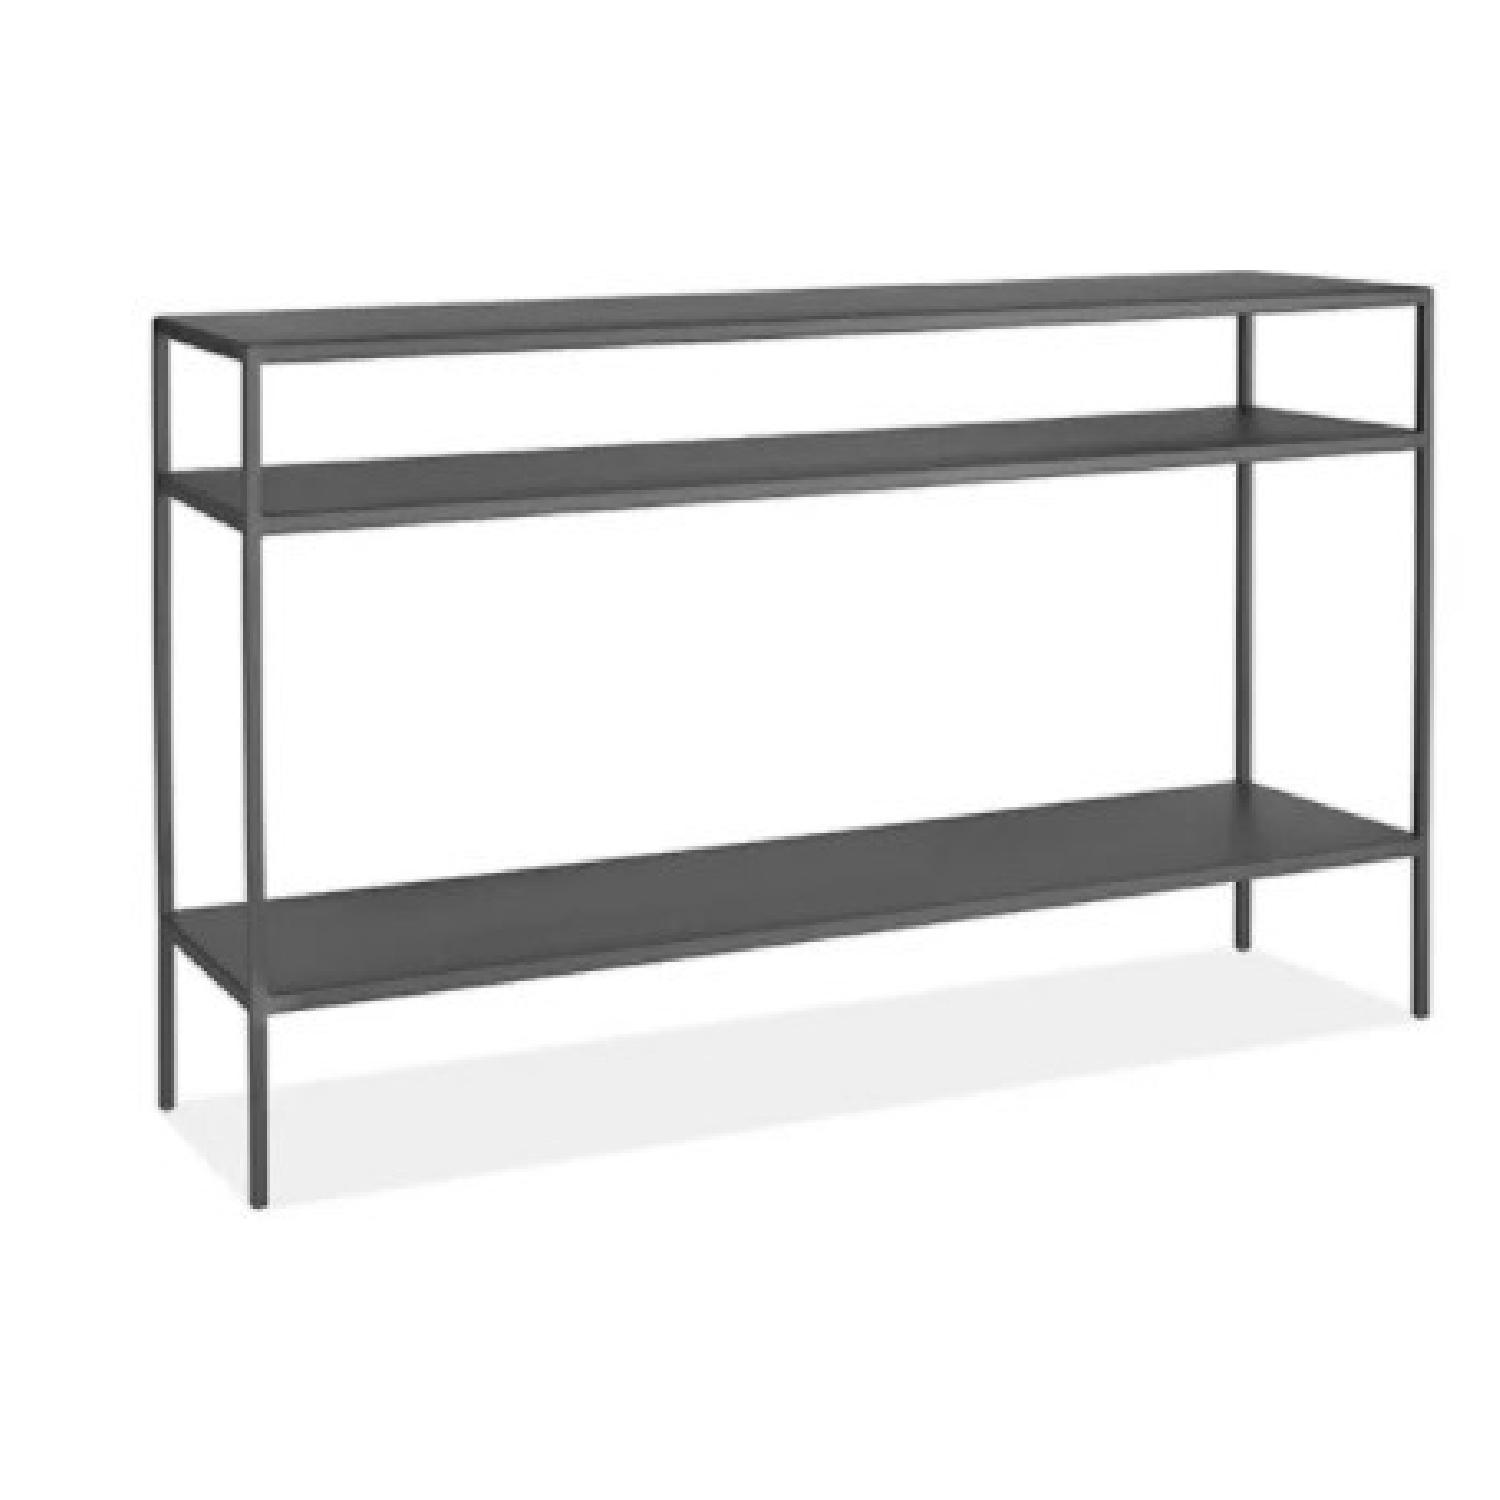 Room & Board Slim Console Table Natural Steel - image-0